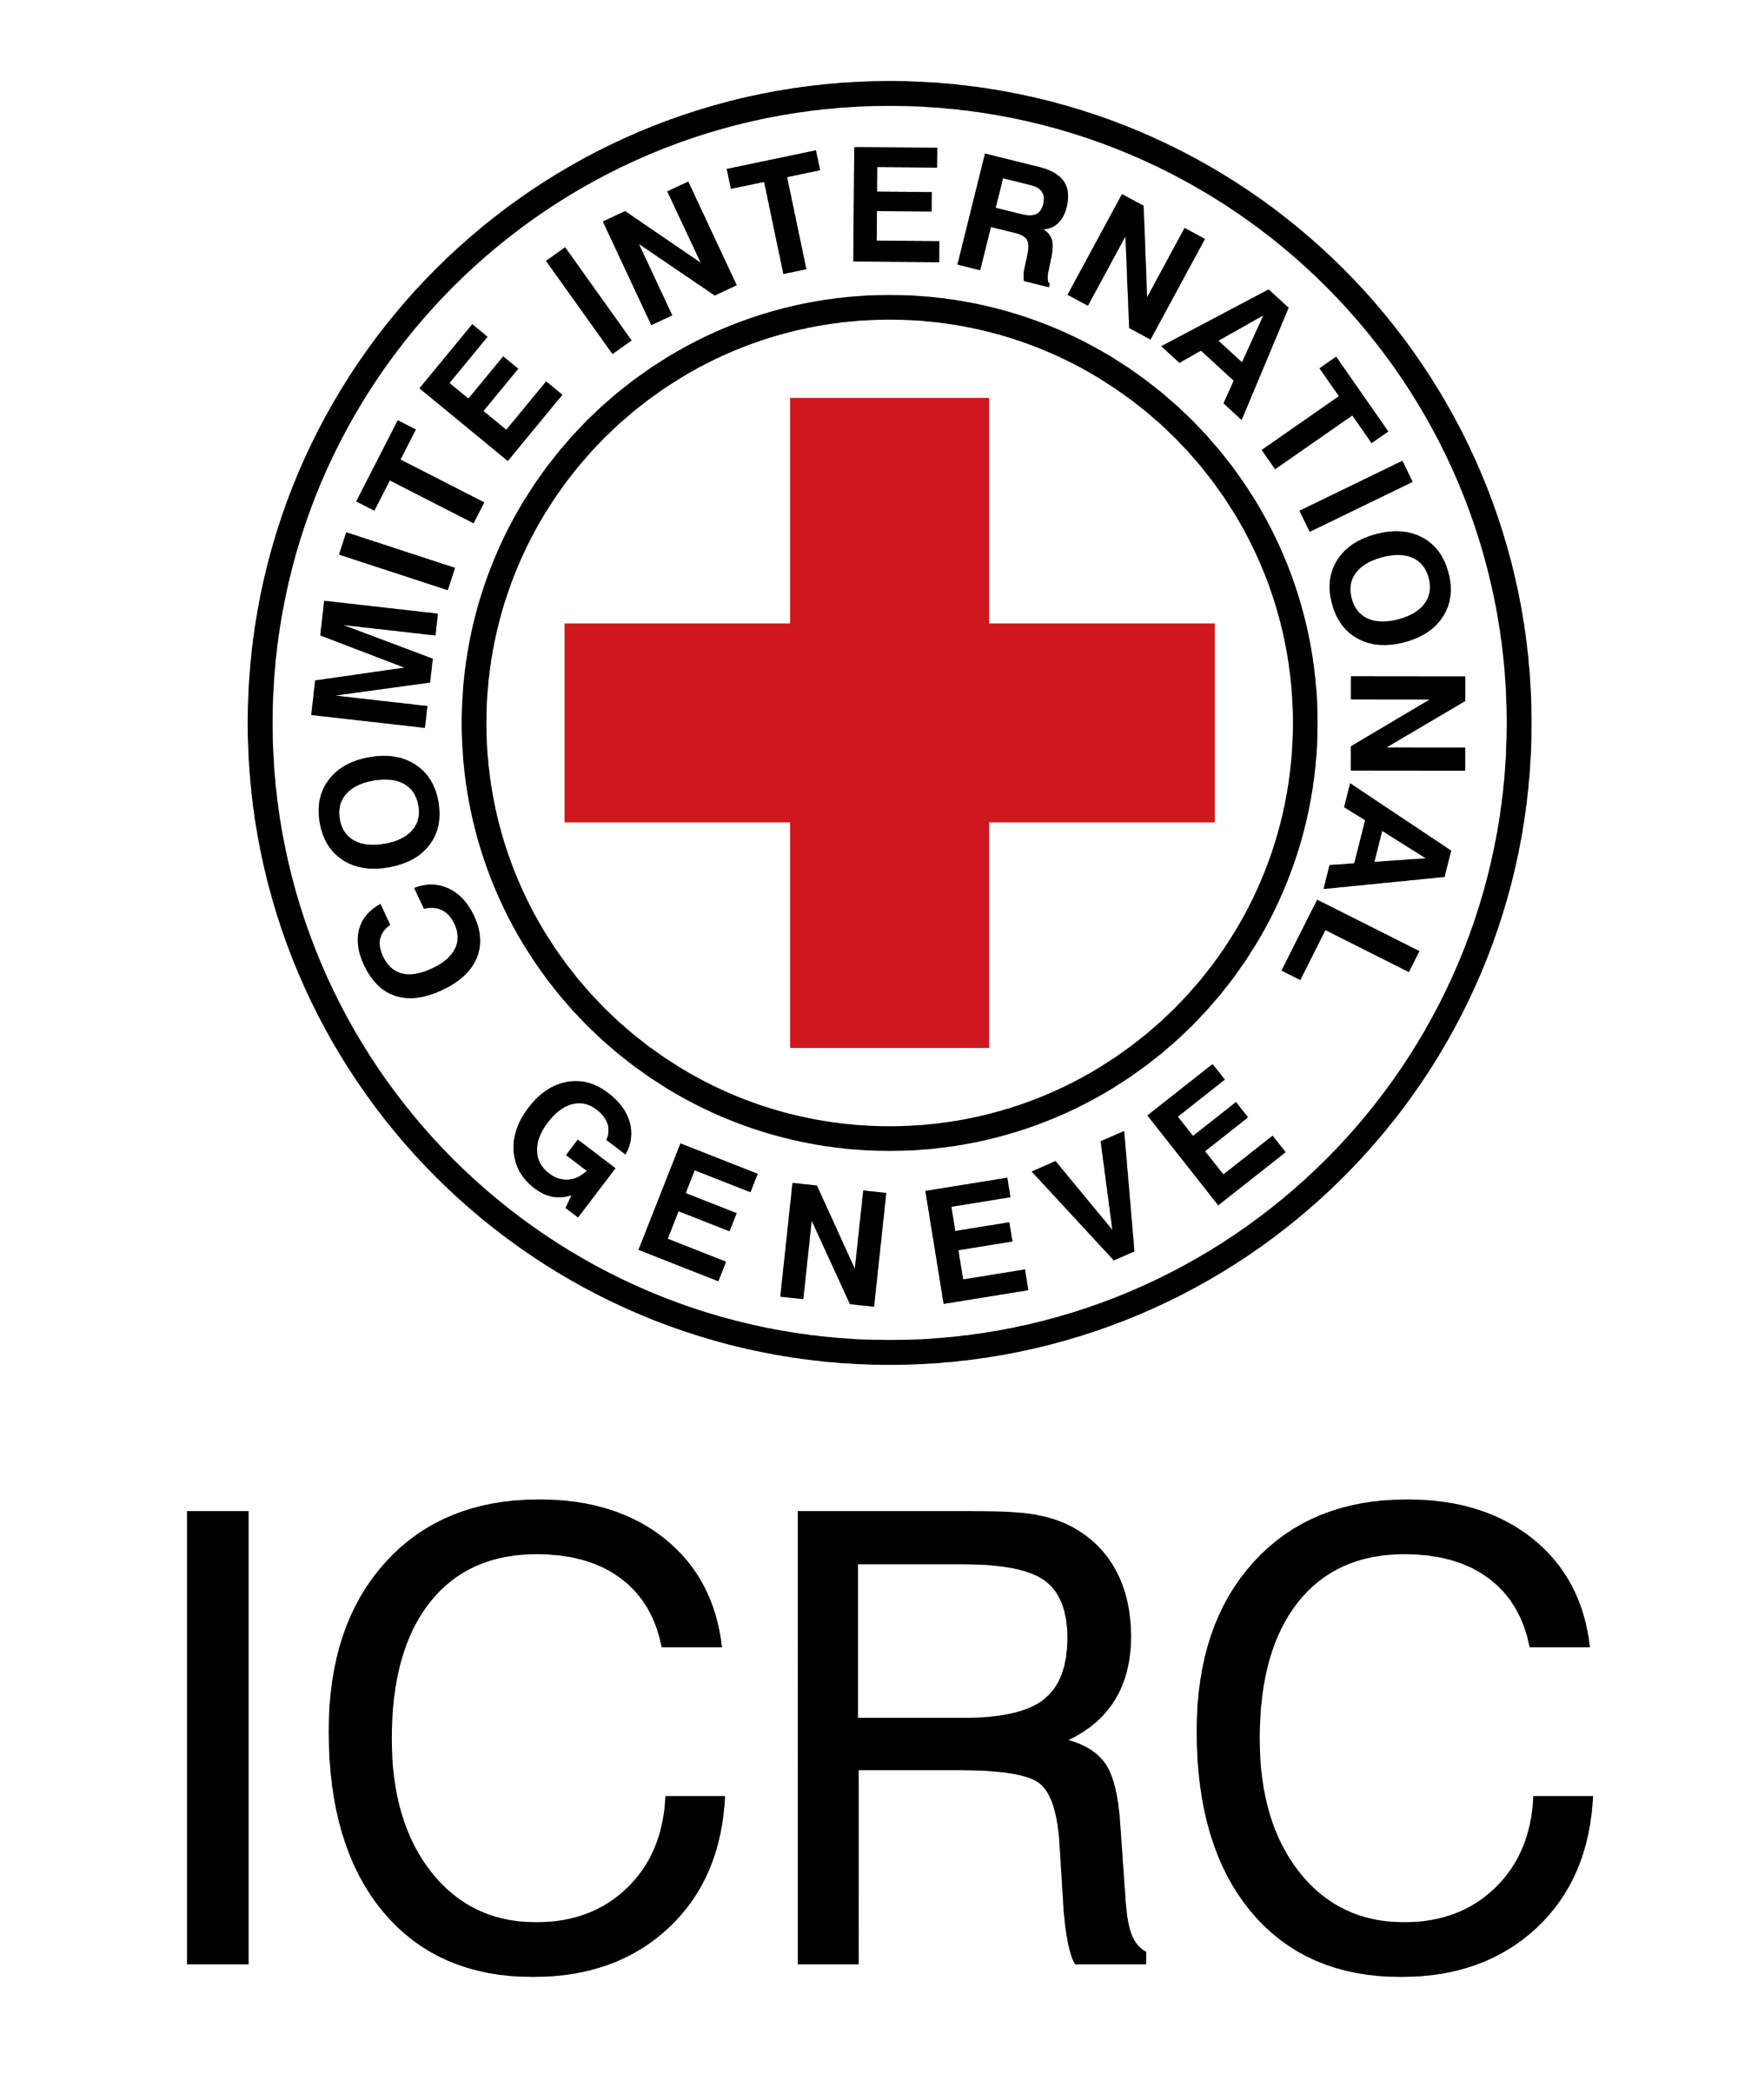 Generalist and Medical Field Officer based in Chiang Mai